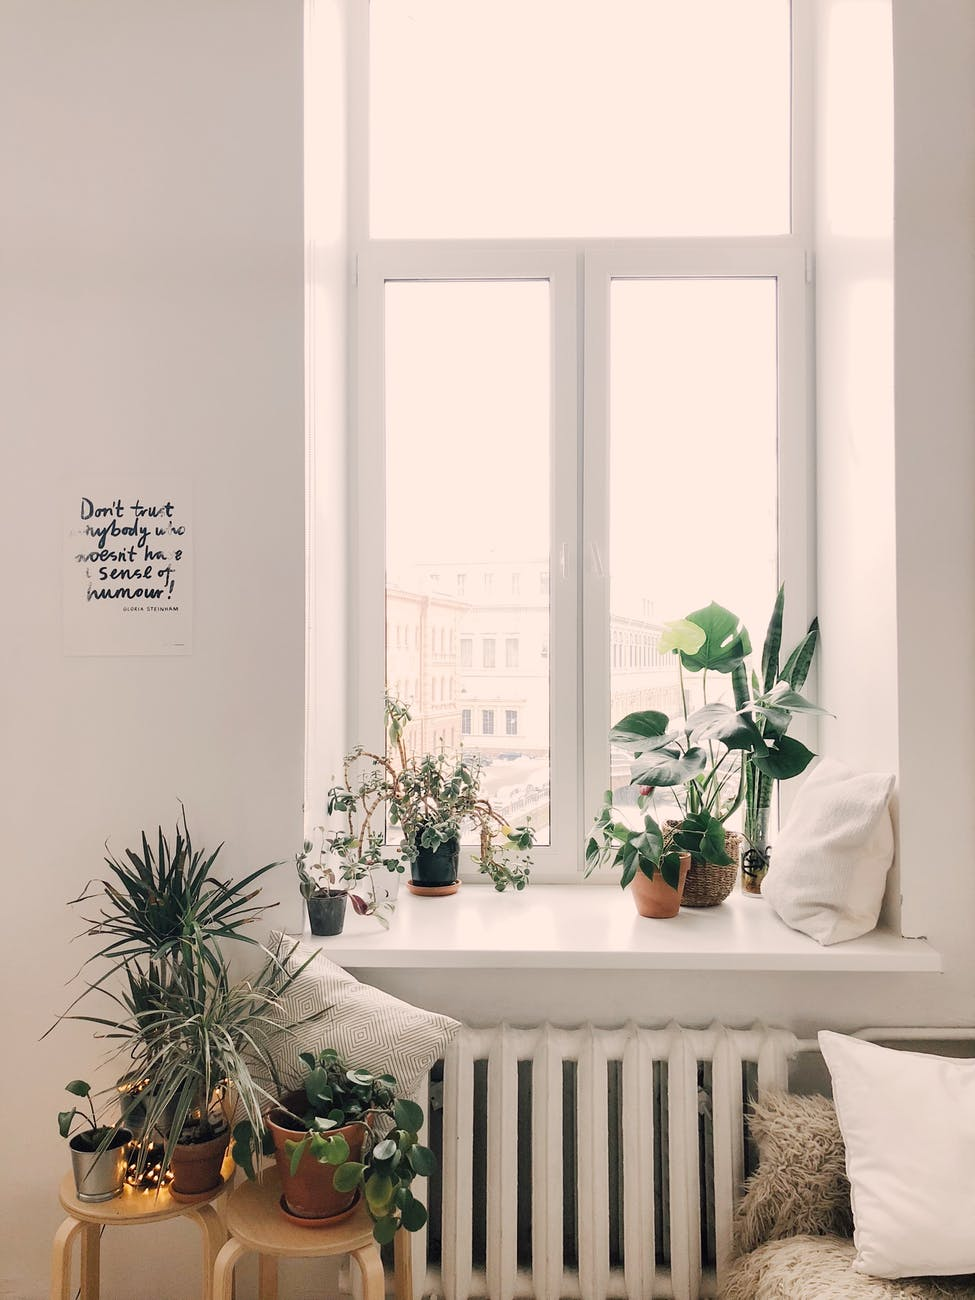 photo of green leaf potted plants on window and stand